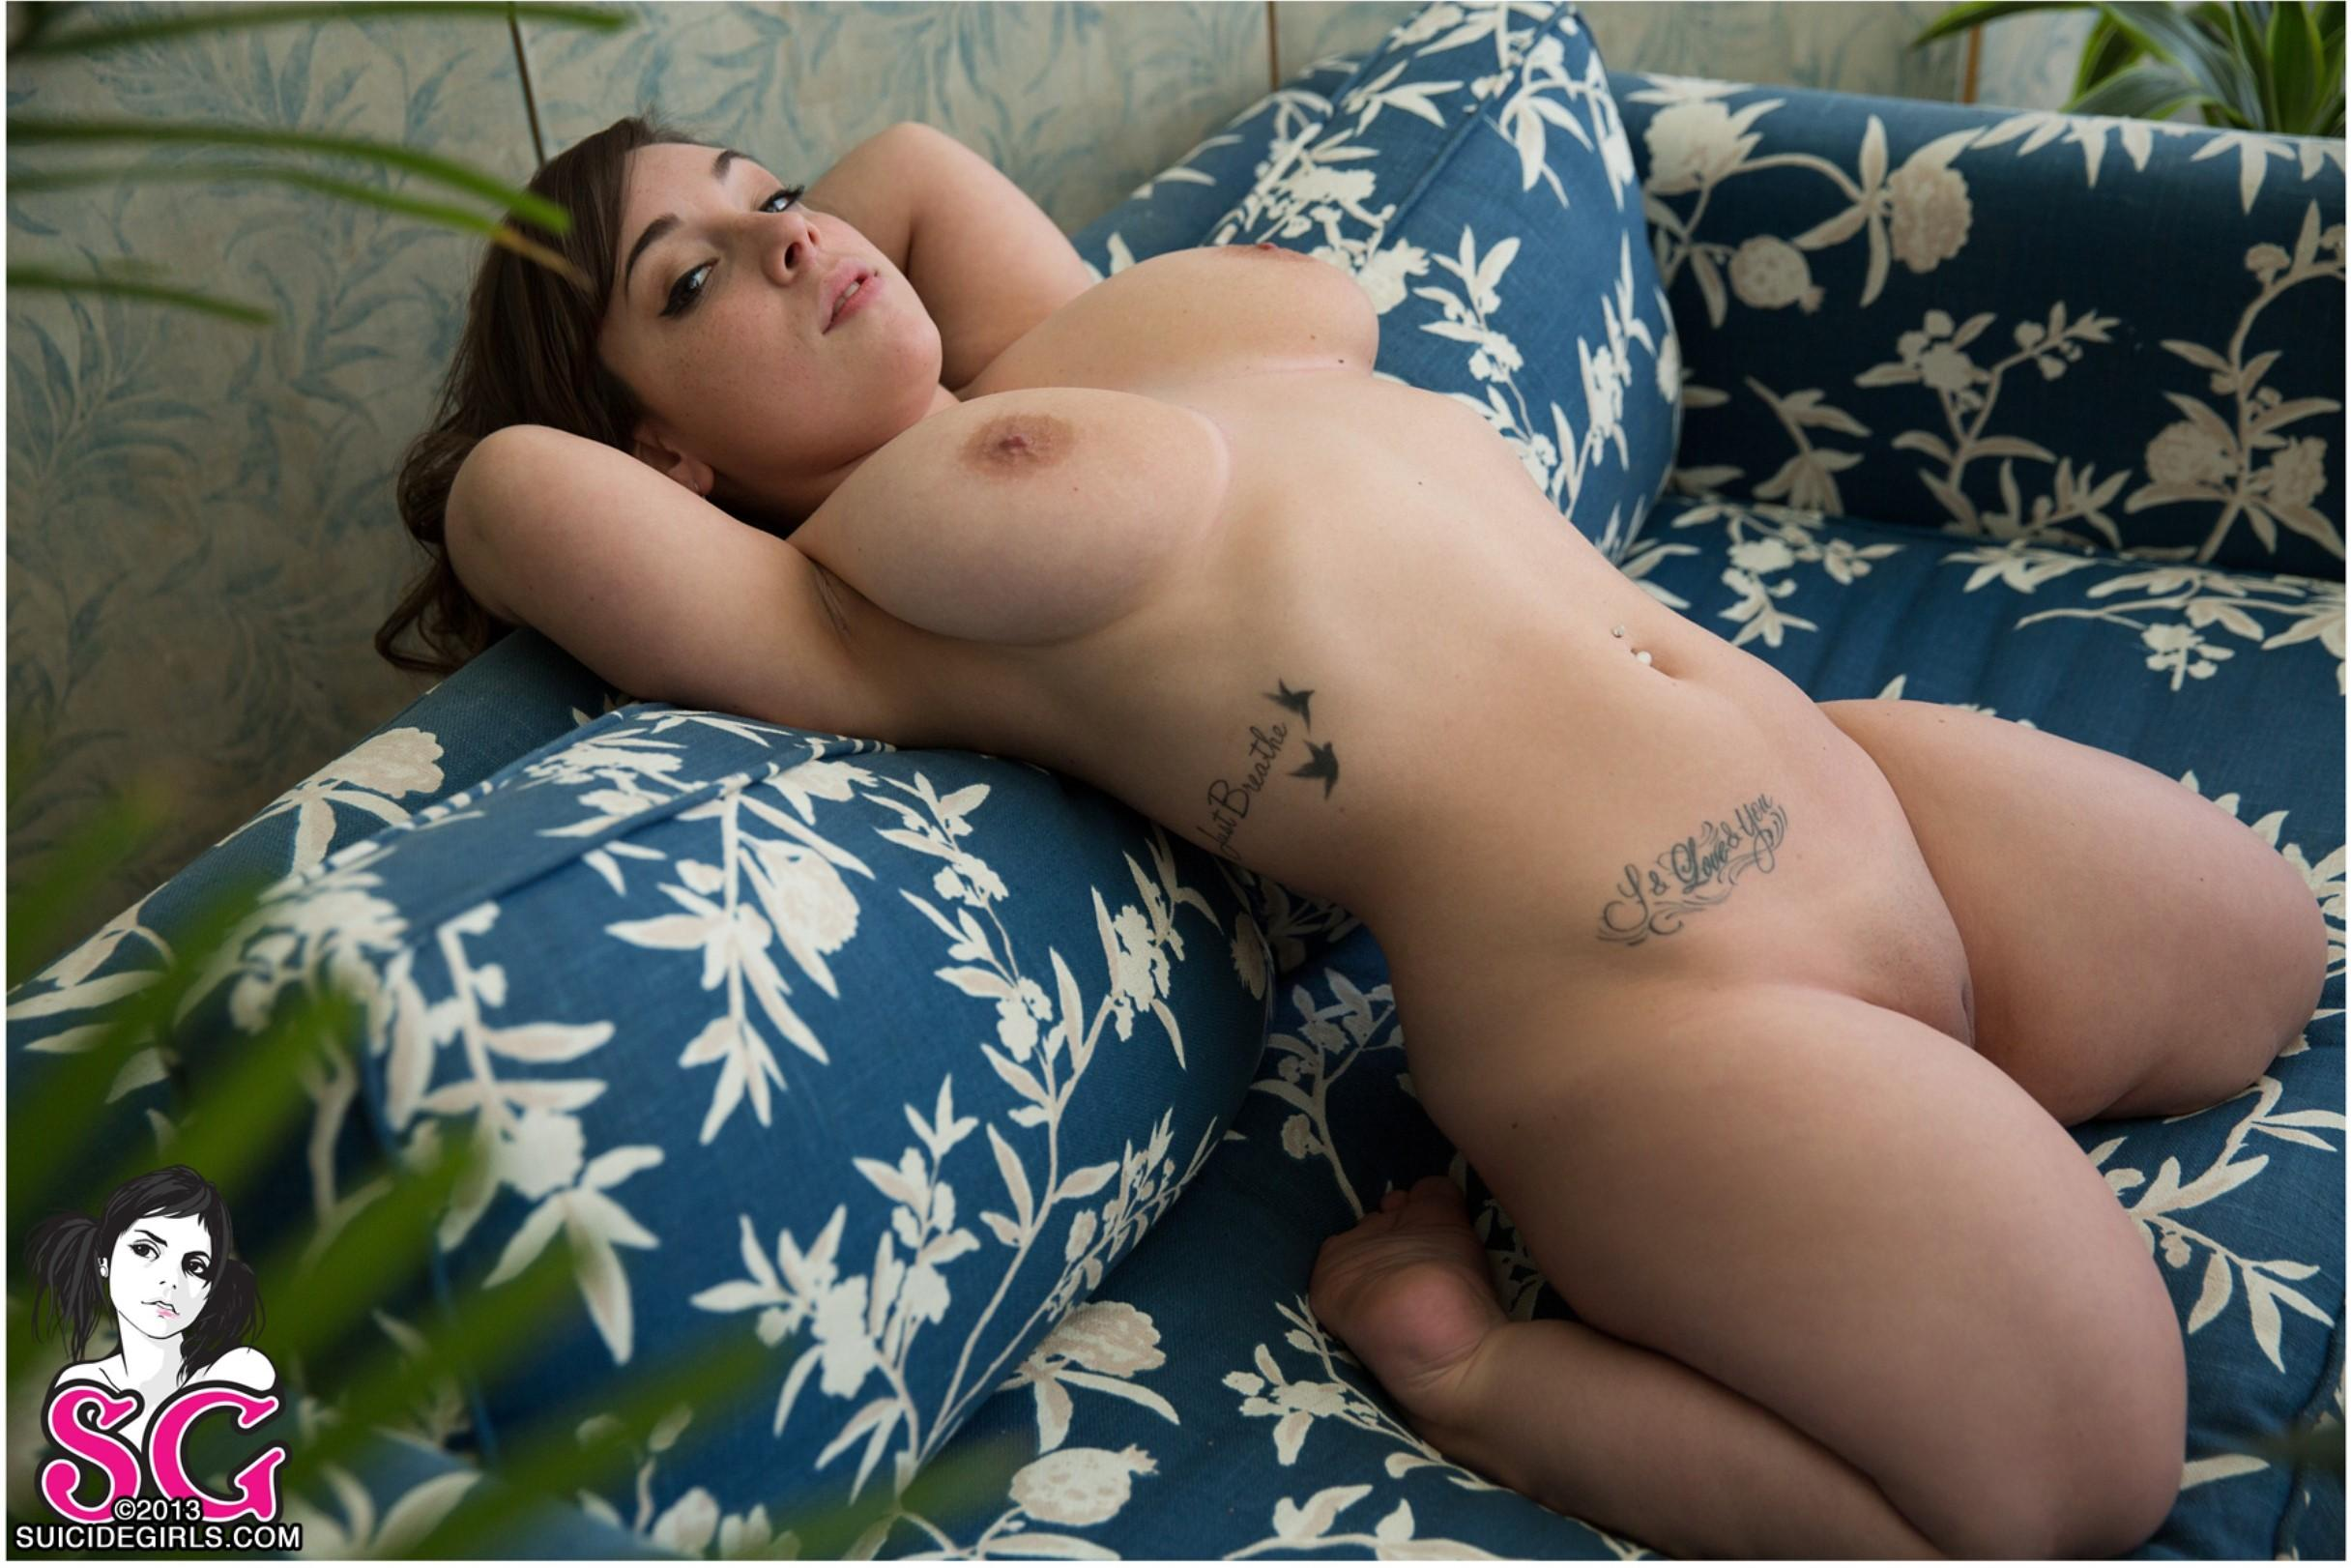 Xxx hd nude photo softcore photo